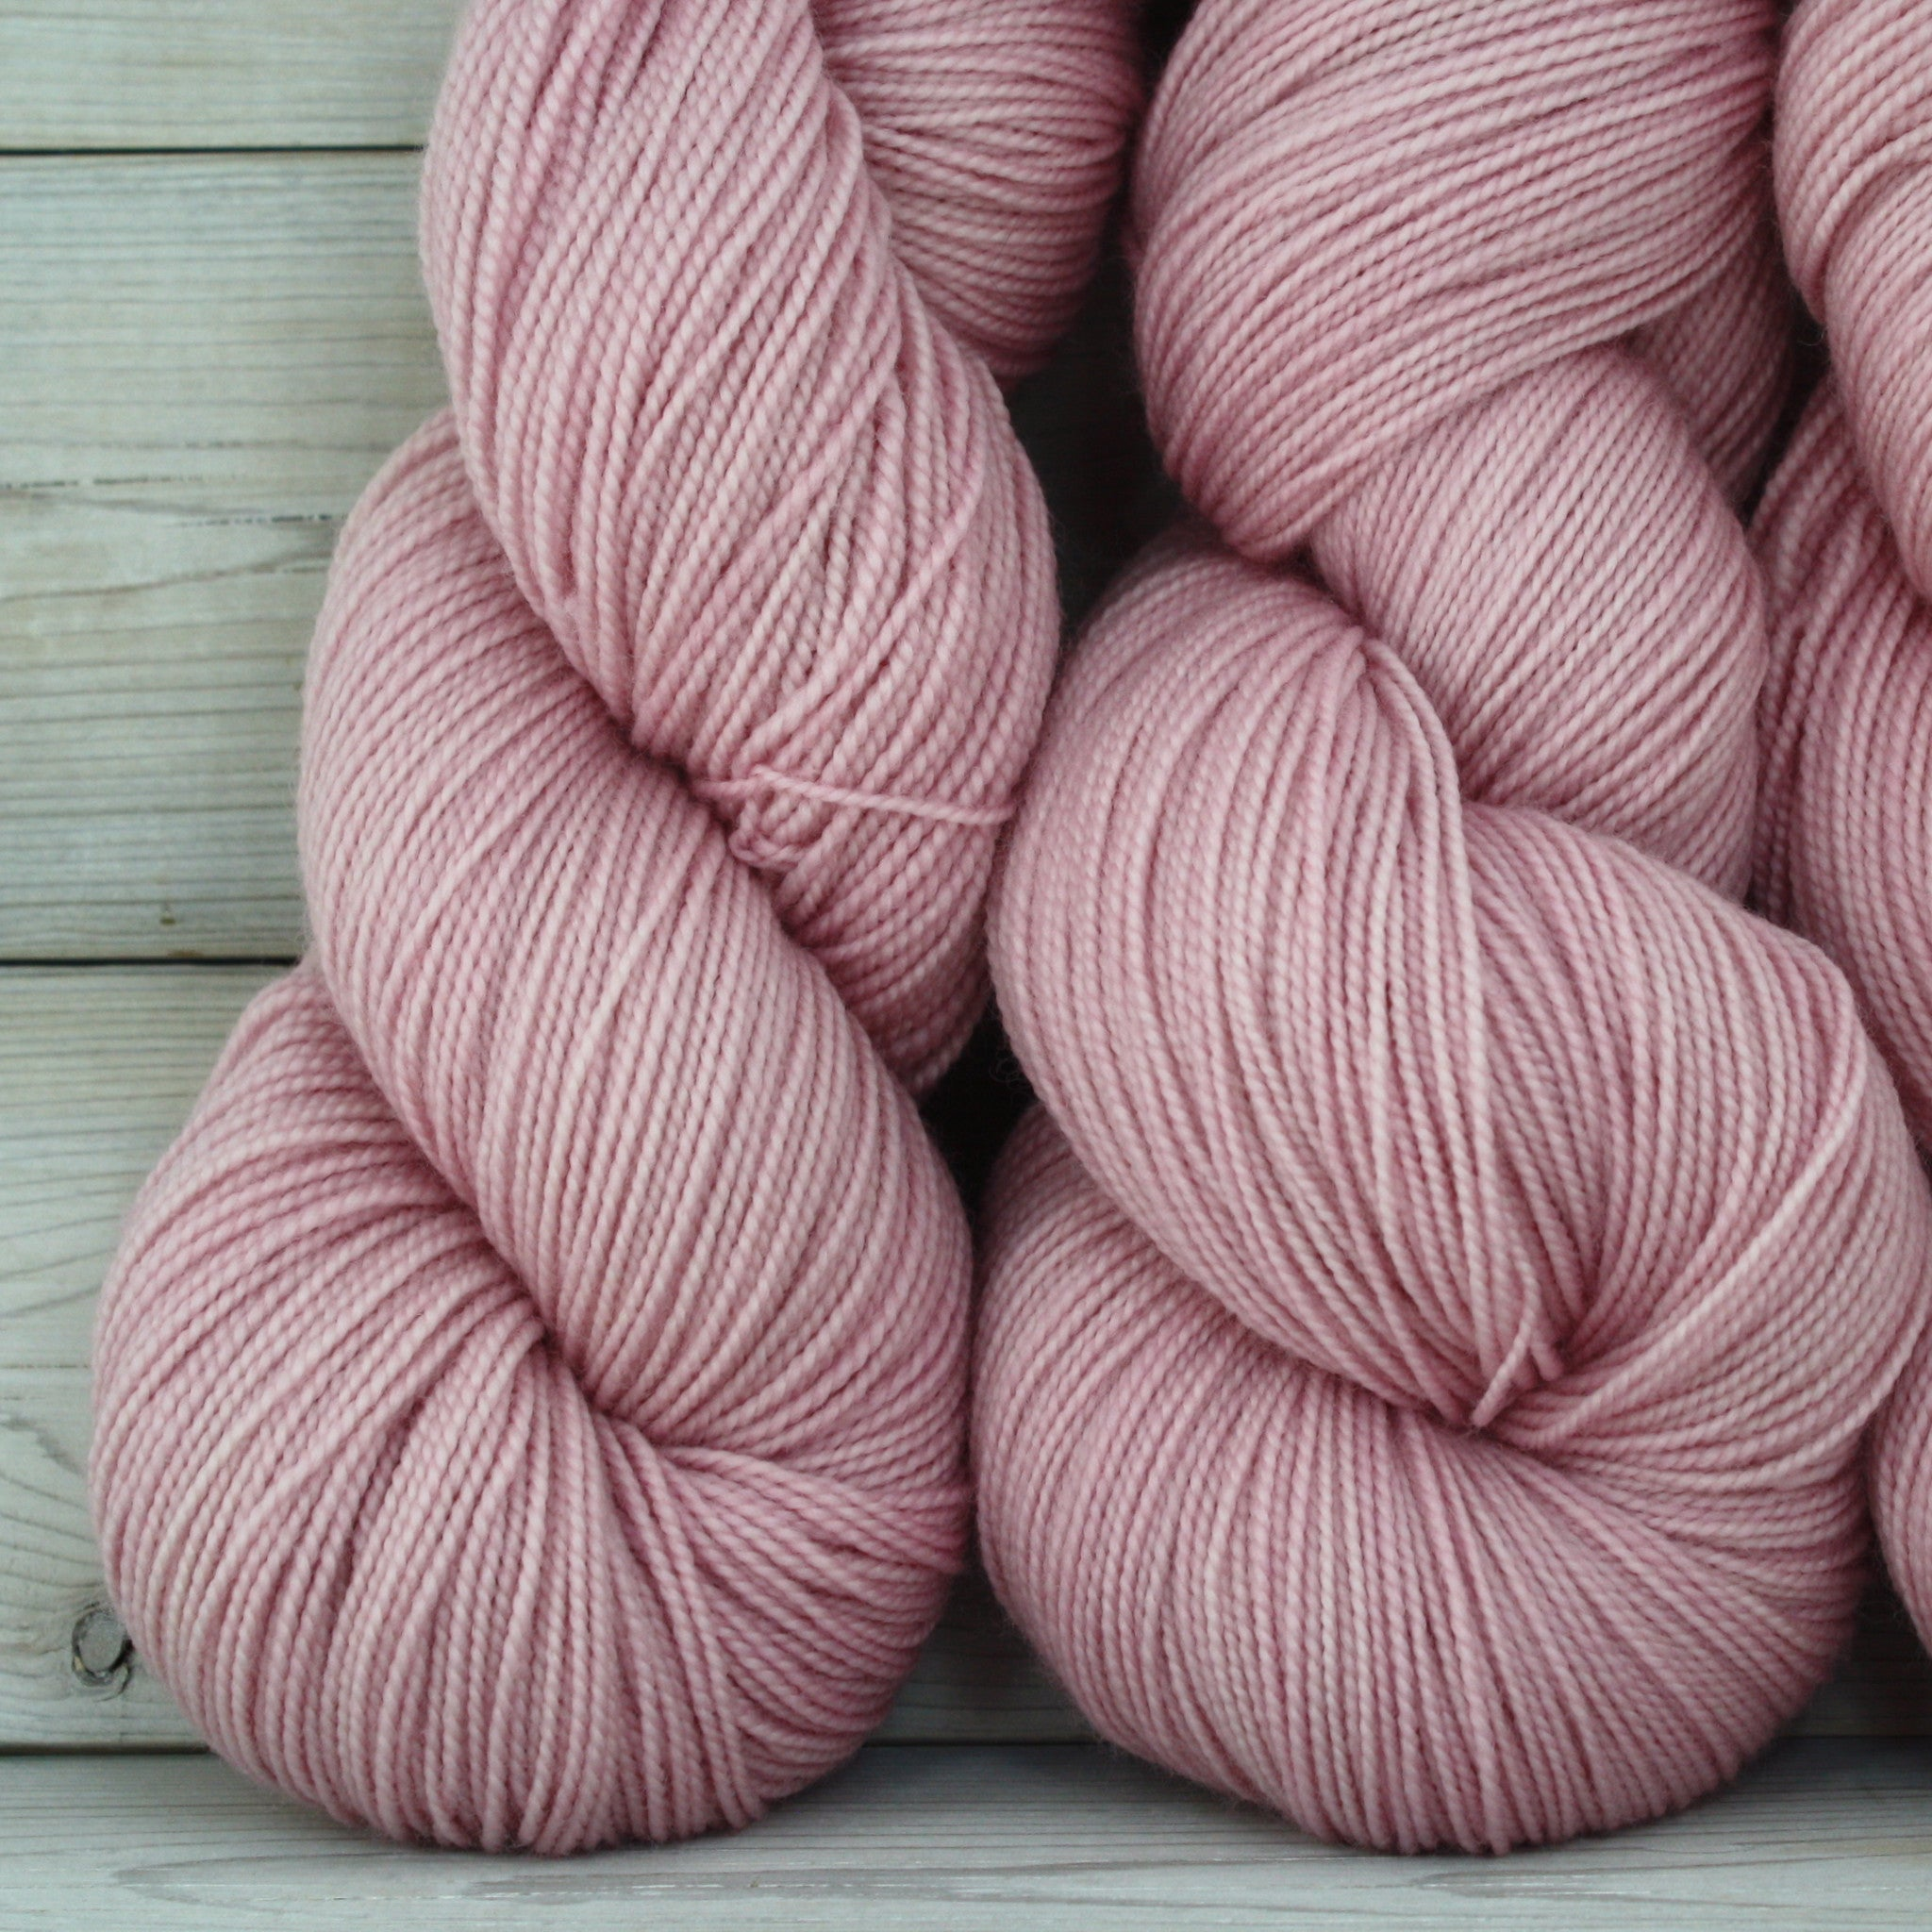 Celeste Yarn | Colorway: Cherry Blossom | Overstock